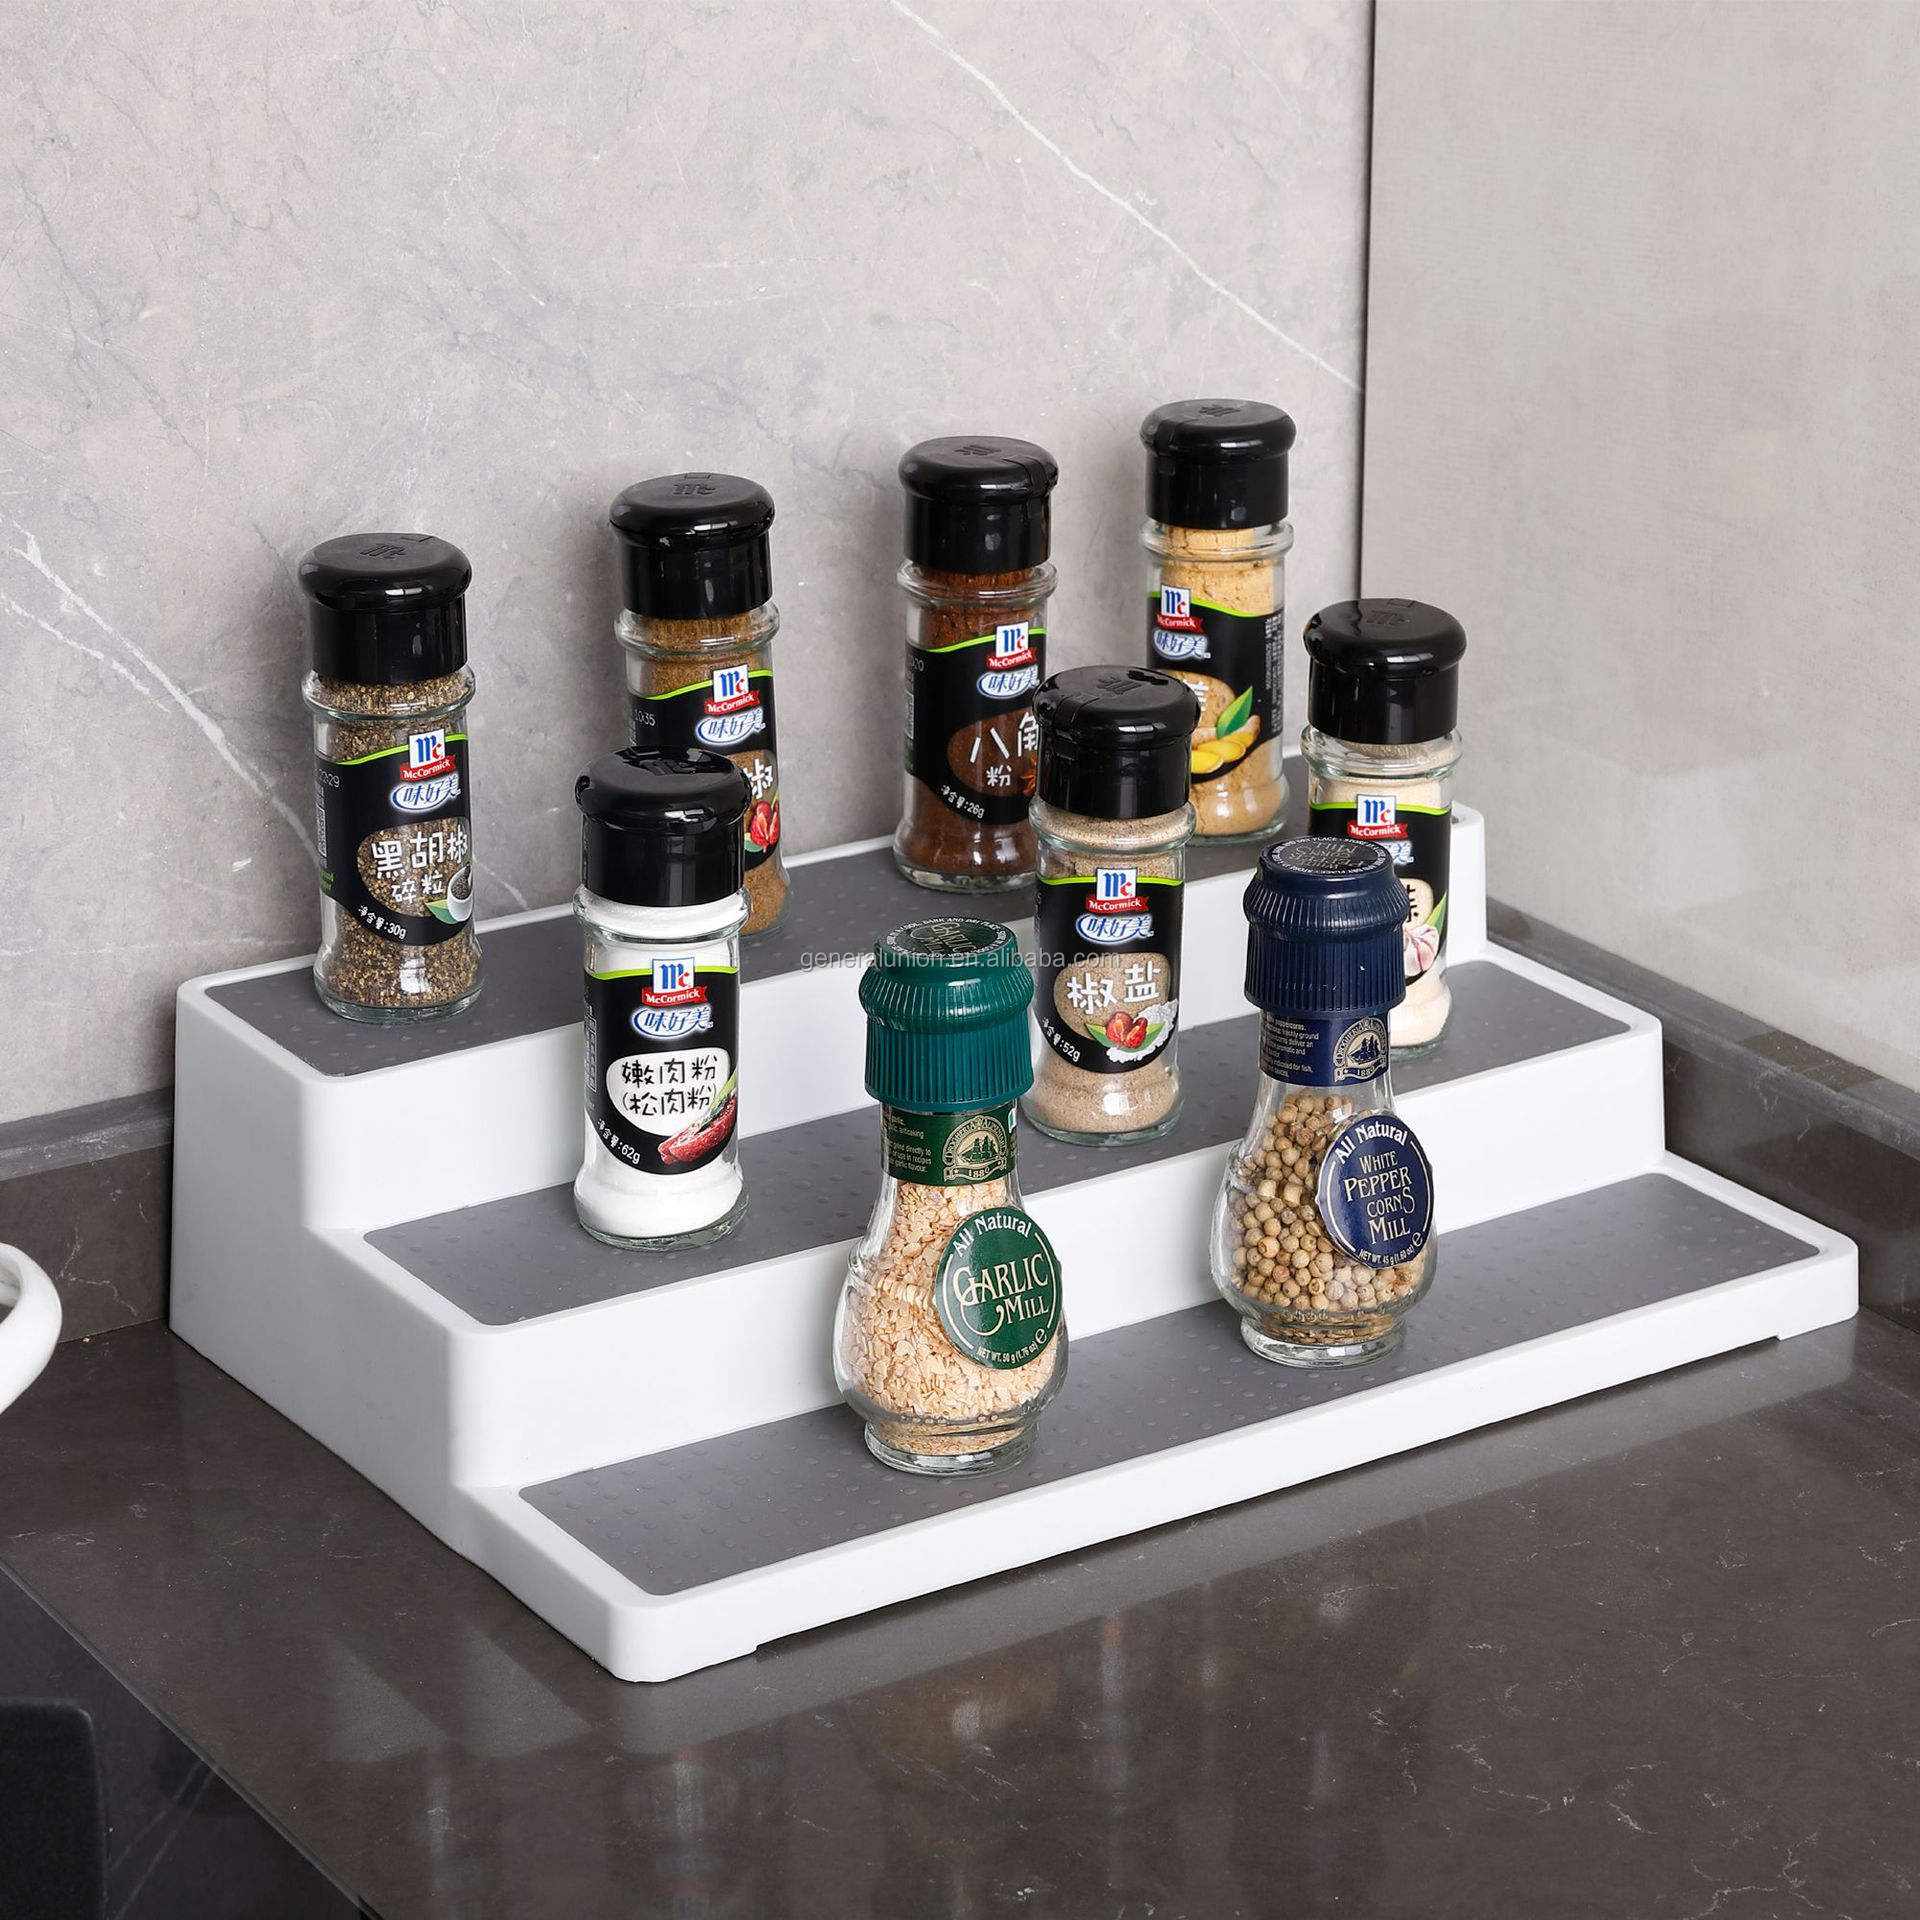 3-tier PP spice rack cabinet organizer kitchen storage